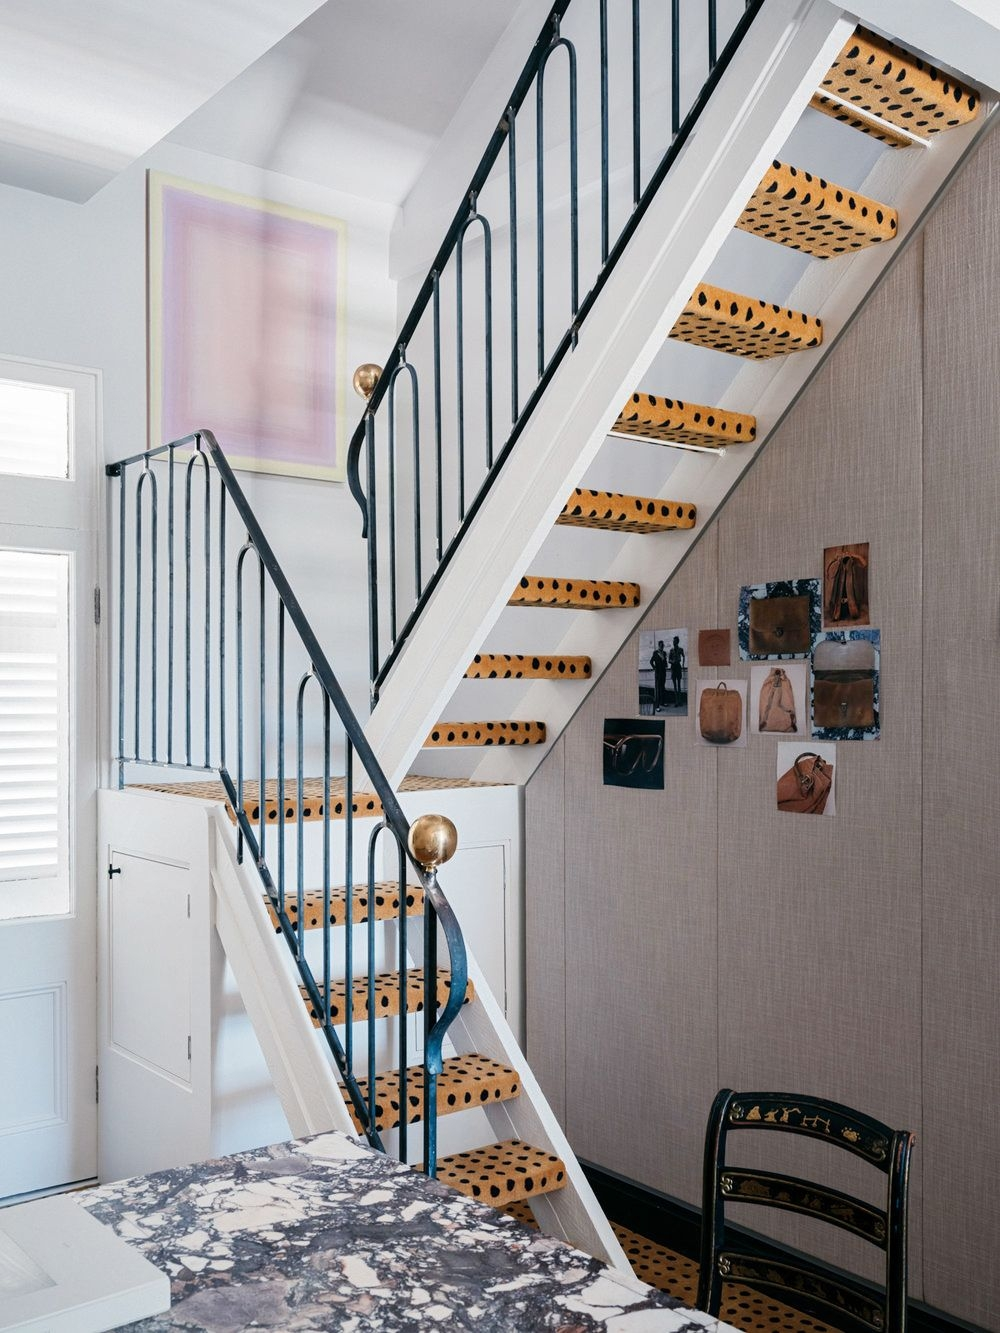 25 Unique Stair Designs Beautiful Stair Ideas For Your House | Design Of Stairs In Small House | Living Room | Family House | Interior | Spiral | 4 Foot